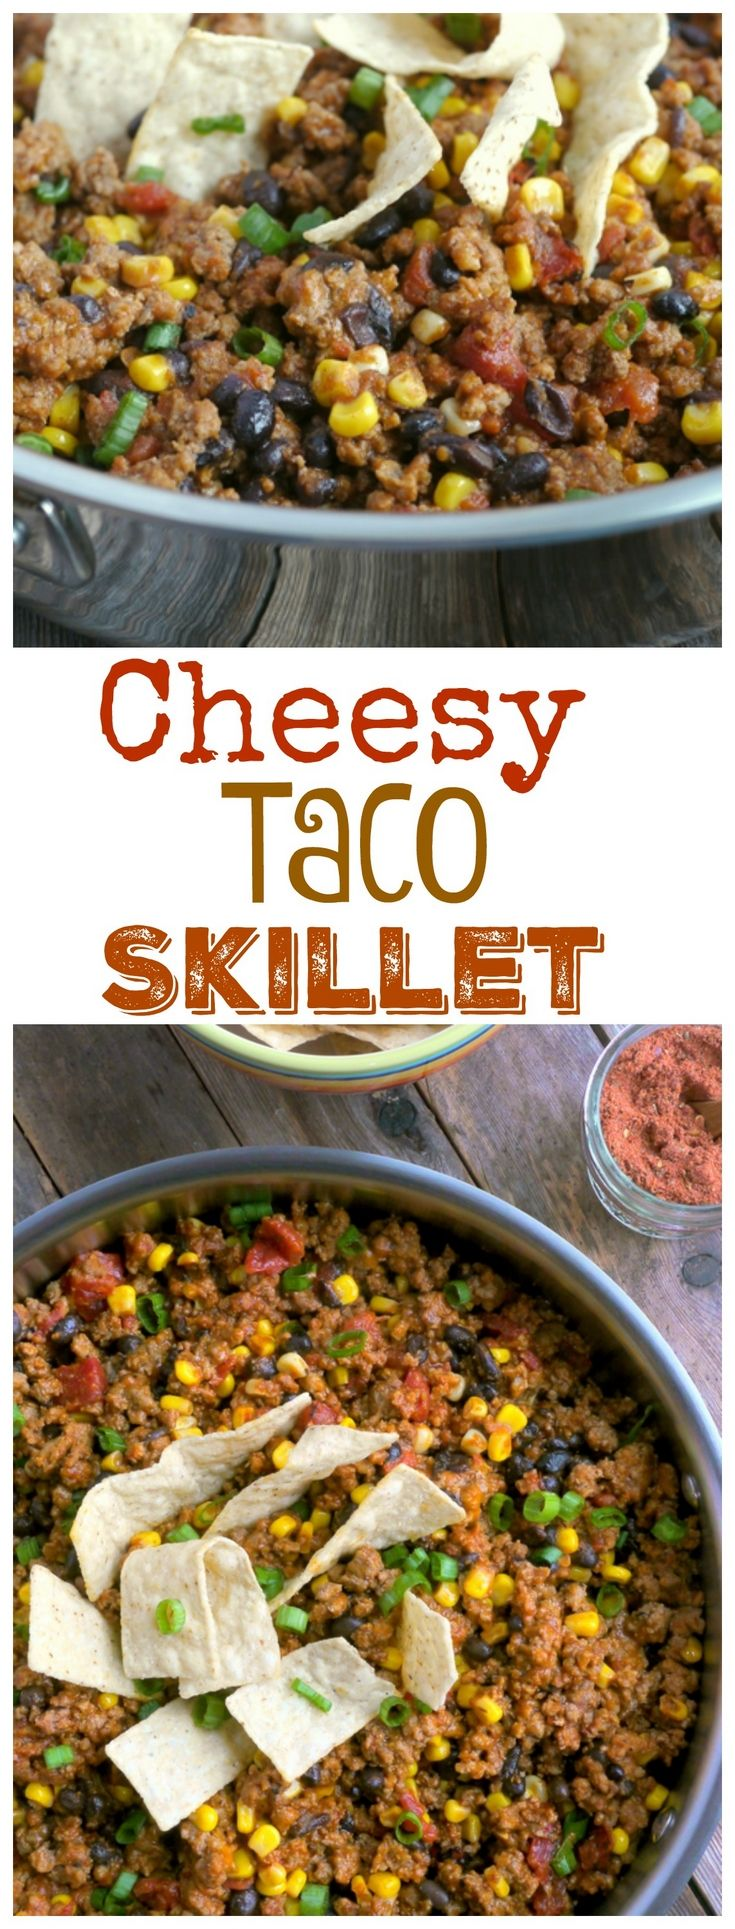 This delicious Cheesy Taco Skillet whips up in no…